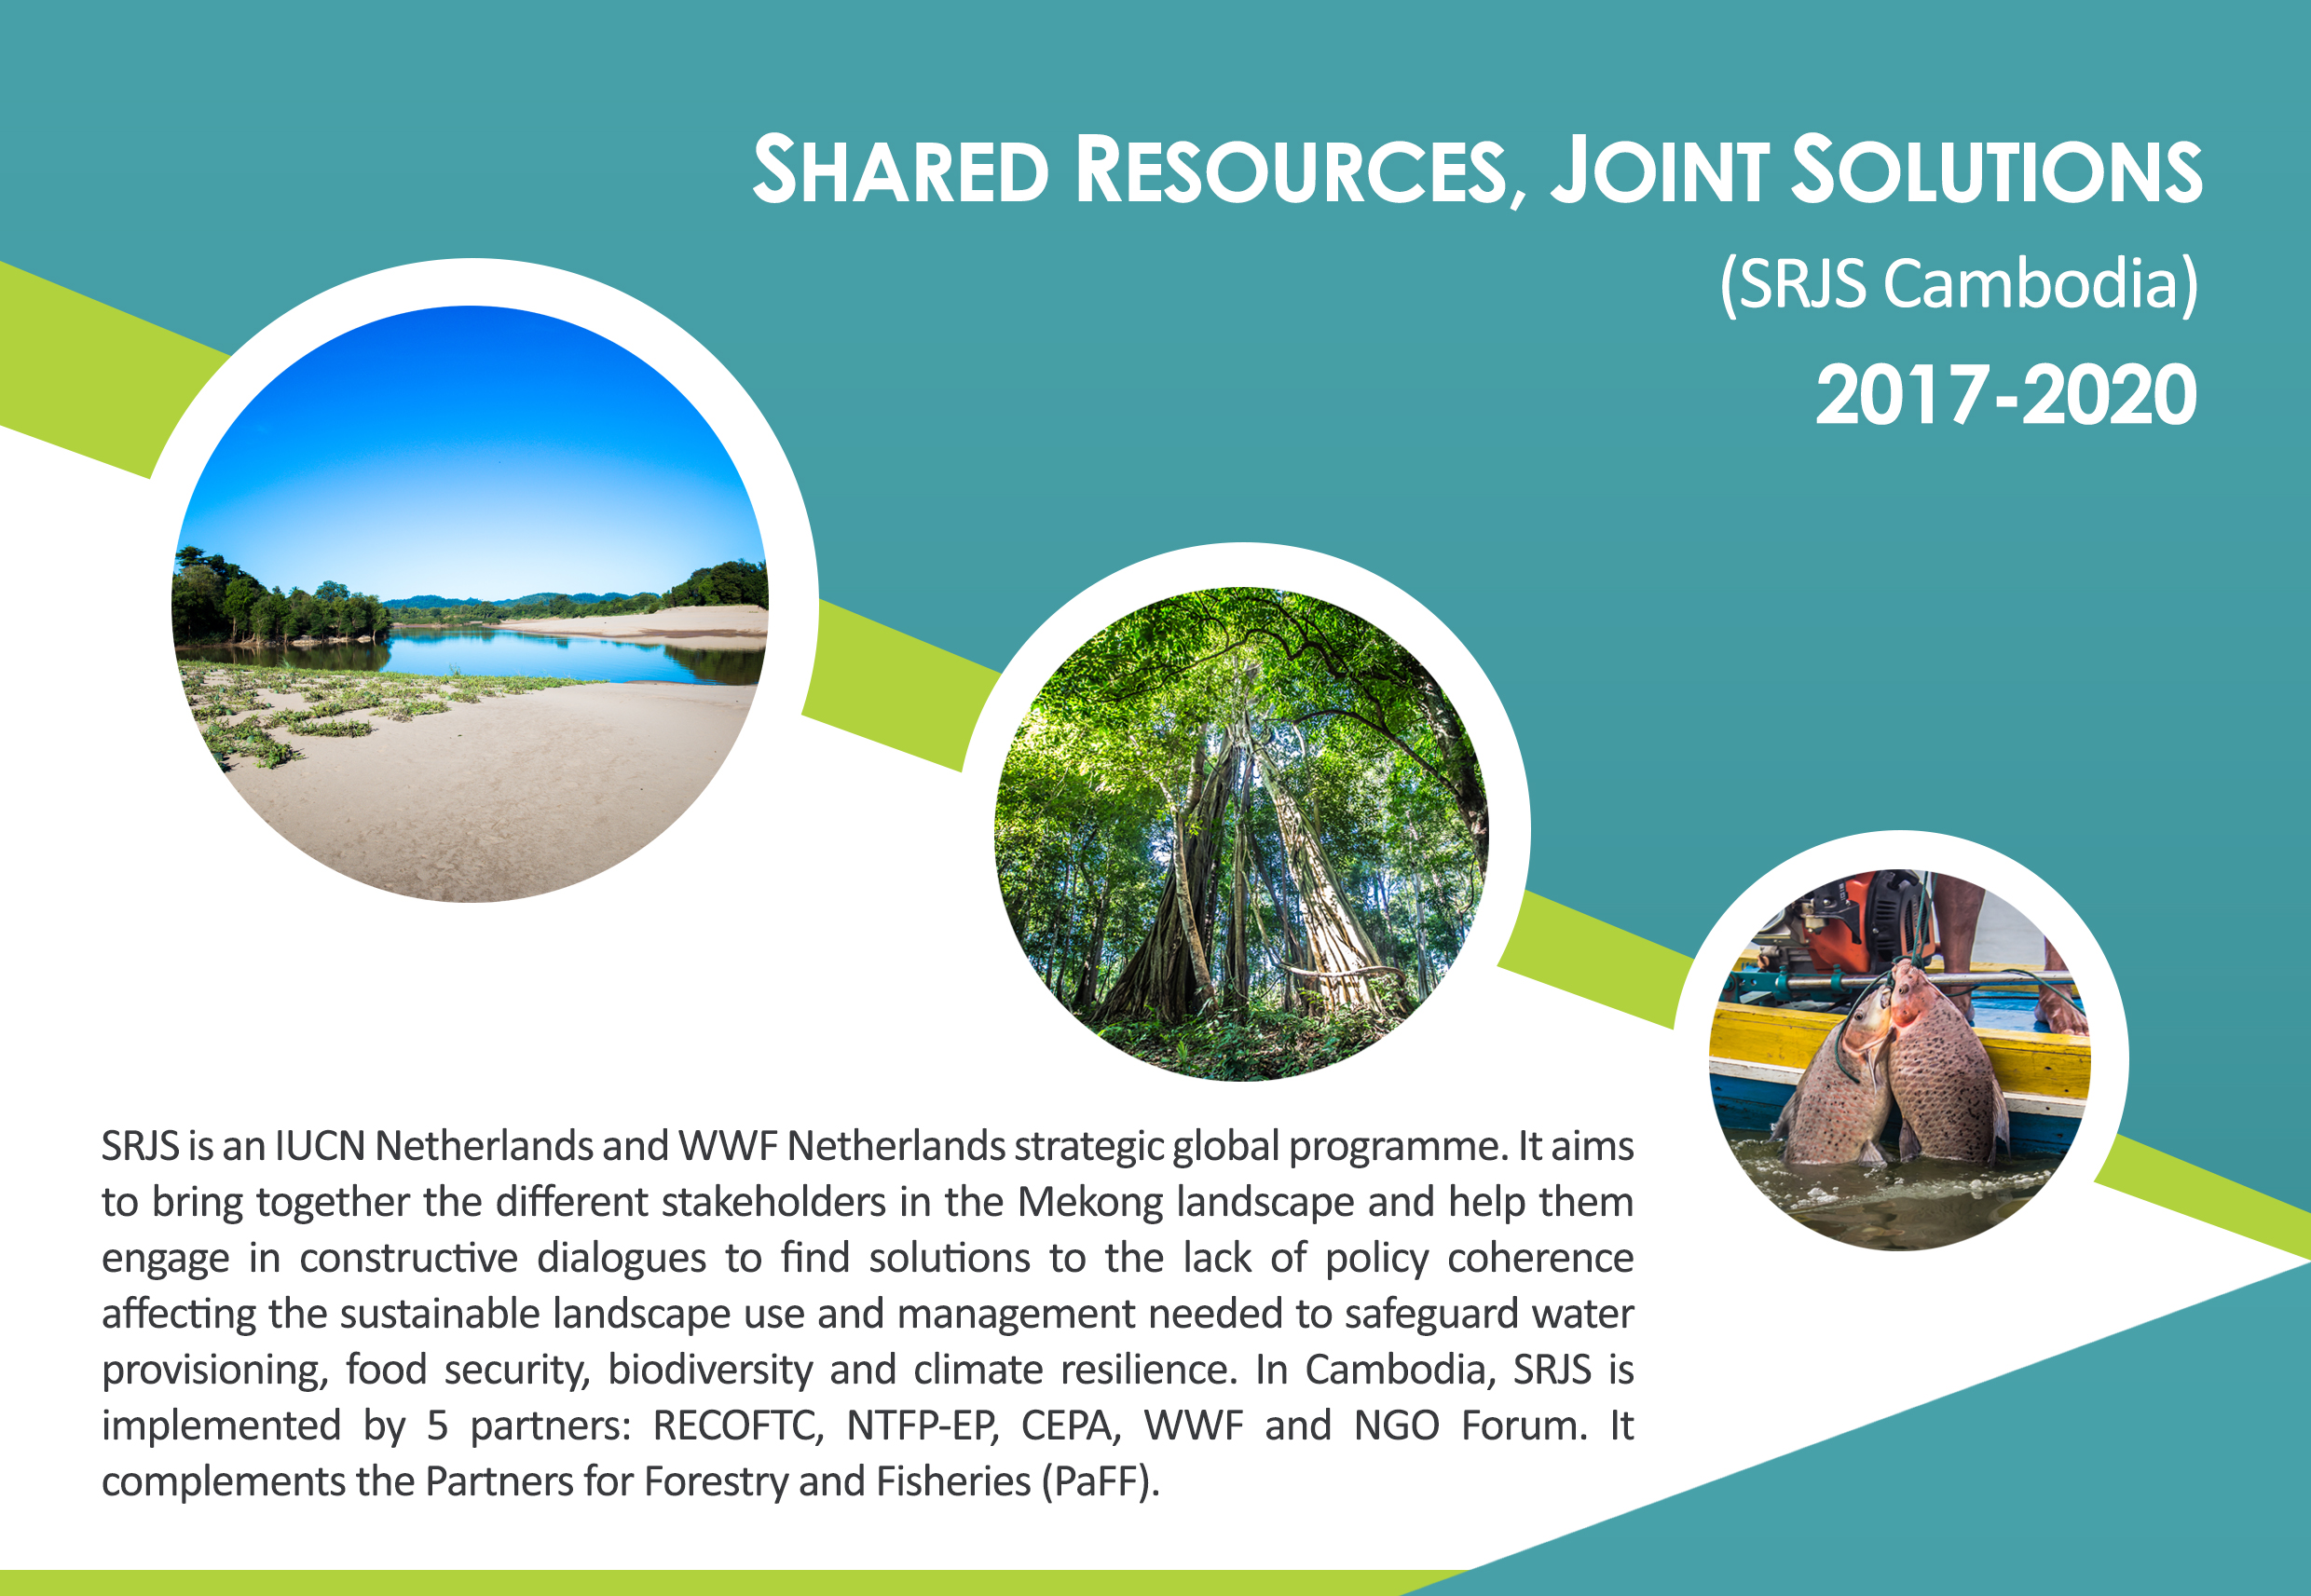 SHARED RESOURCES, JOINT SOLUTIONS (SRJS)